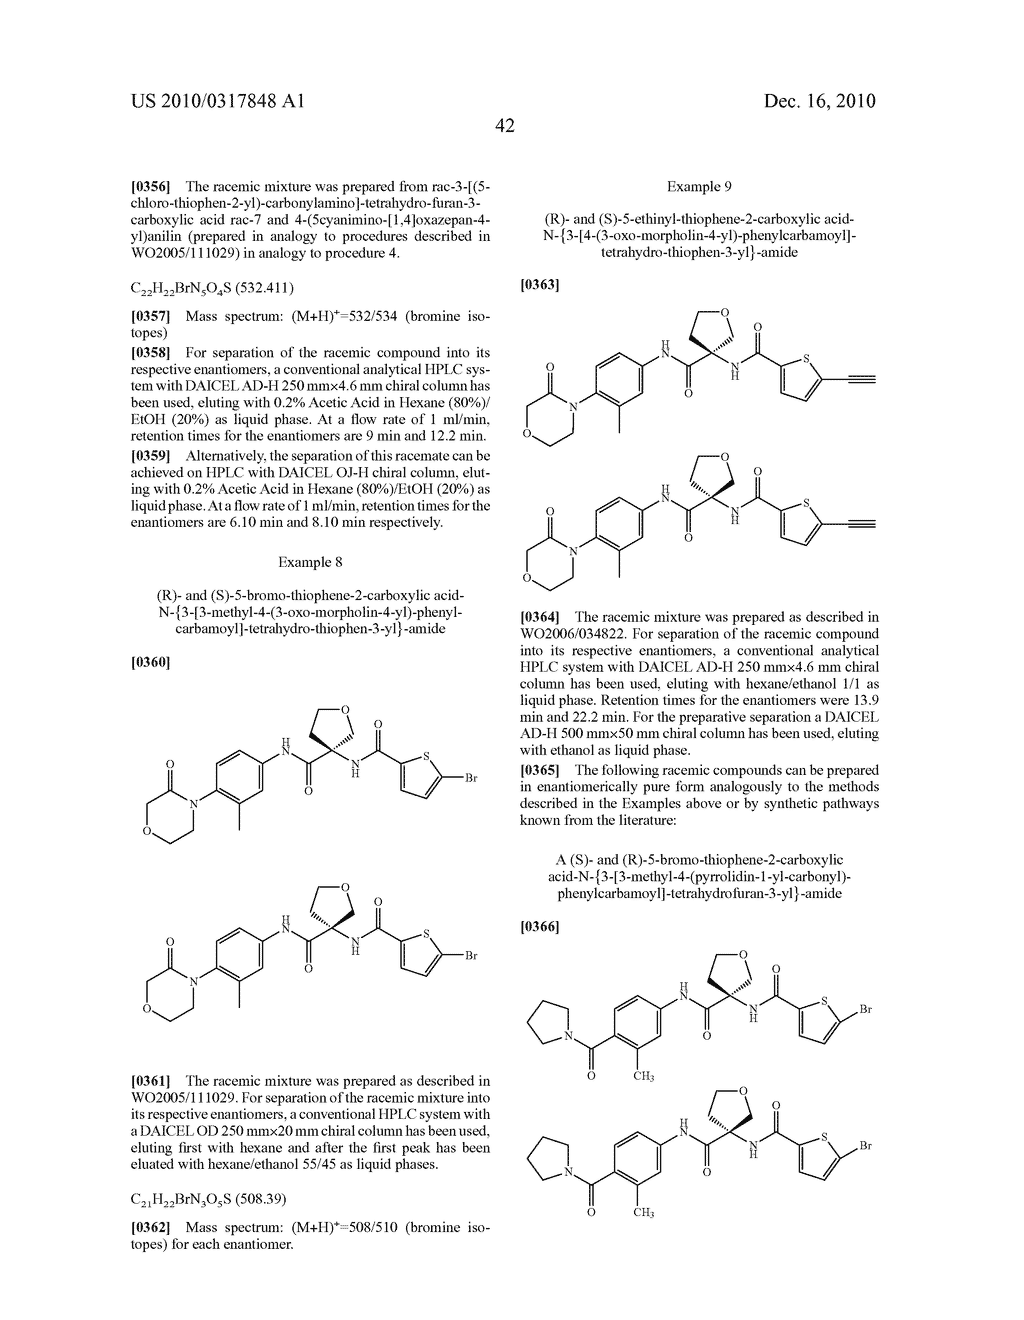 PROCESS FOR THE SYNTHESIS OF DERIVATIVES OF 3-AMINO-TETRAHYDROFURAN-3-CARBOXYLIC ACID AND USE THEREOF AS MEDICAMENTS - diagram, schematic, and image 47